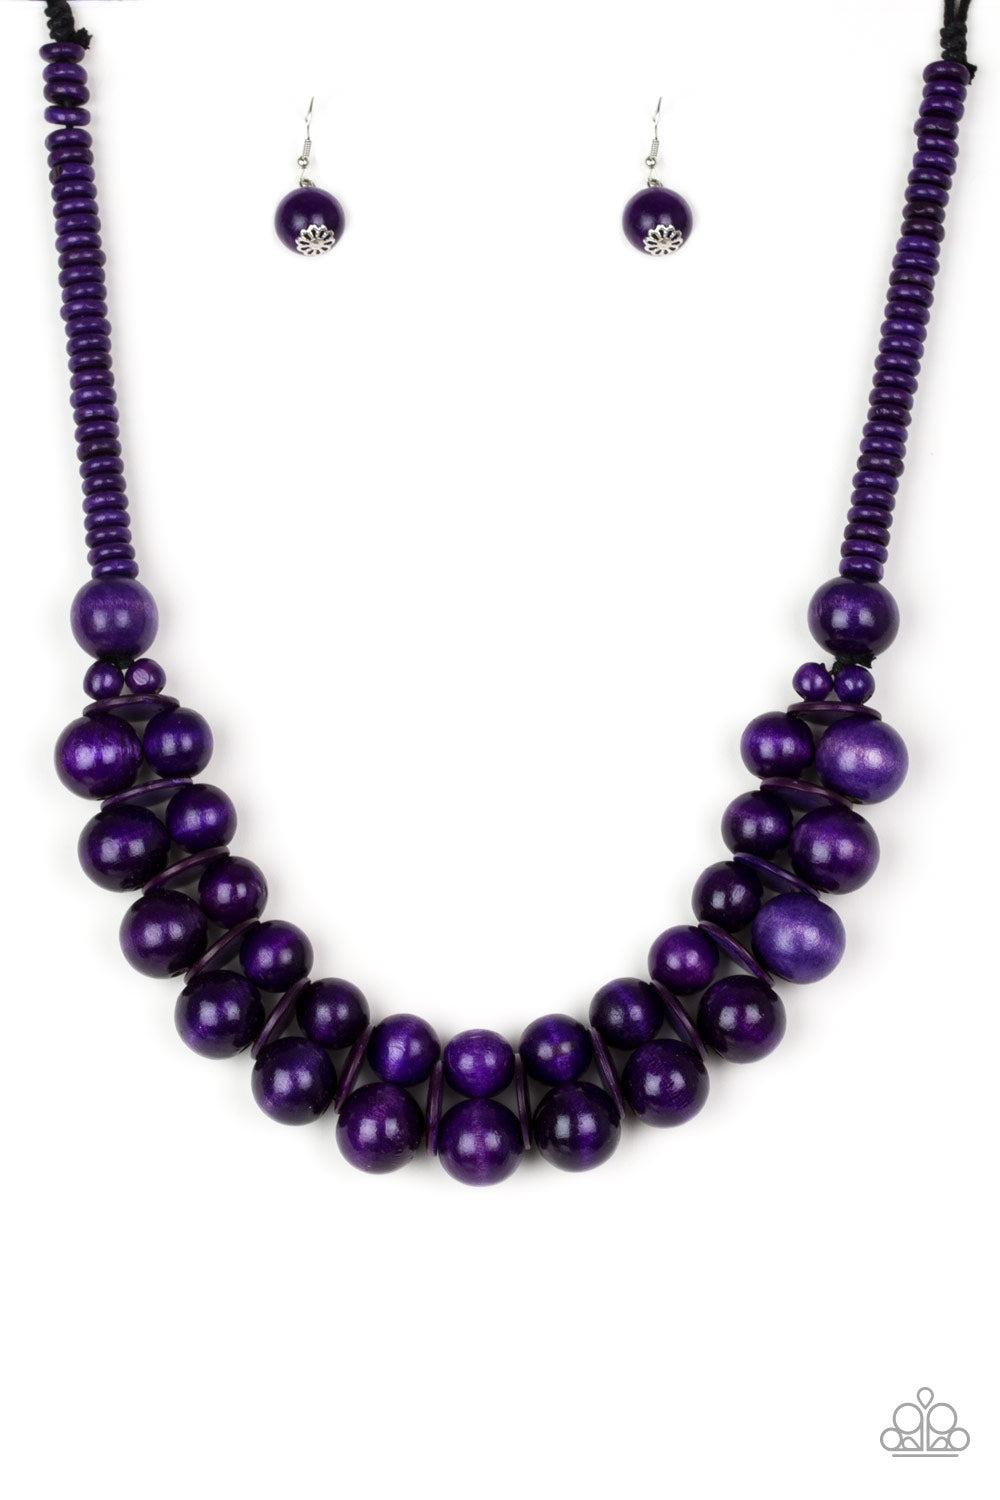 Caribbean Cover Girl - Purple Necklace